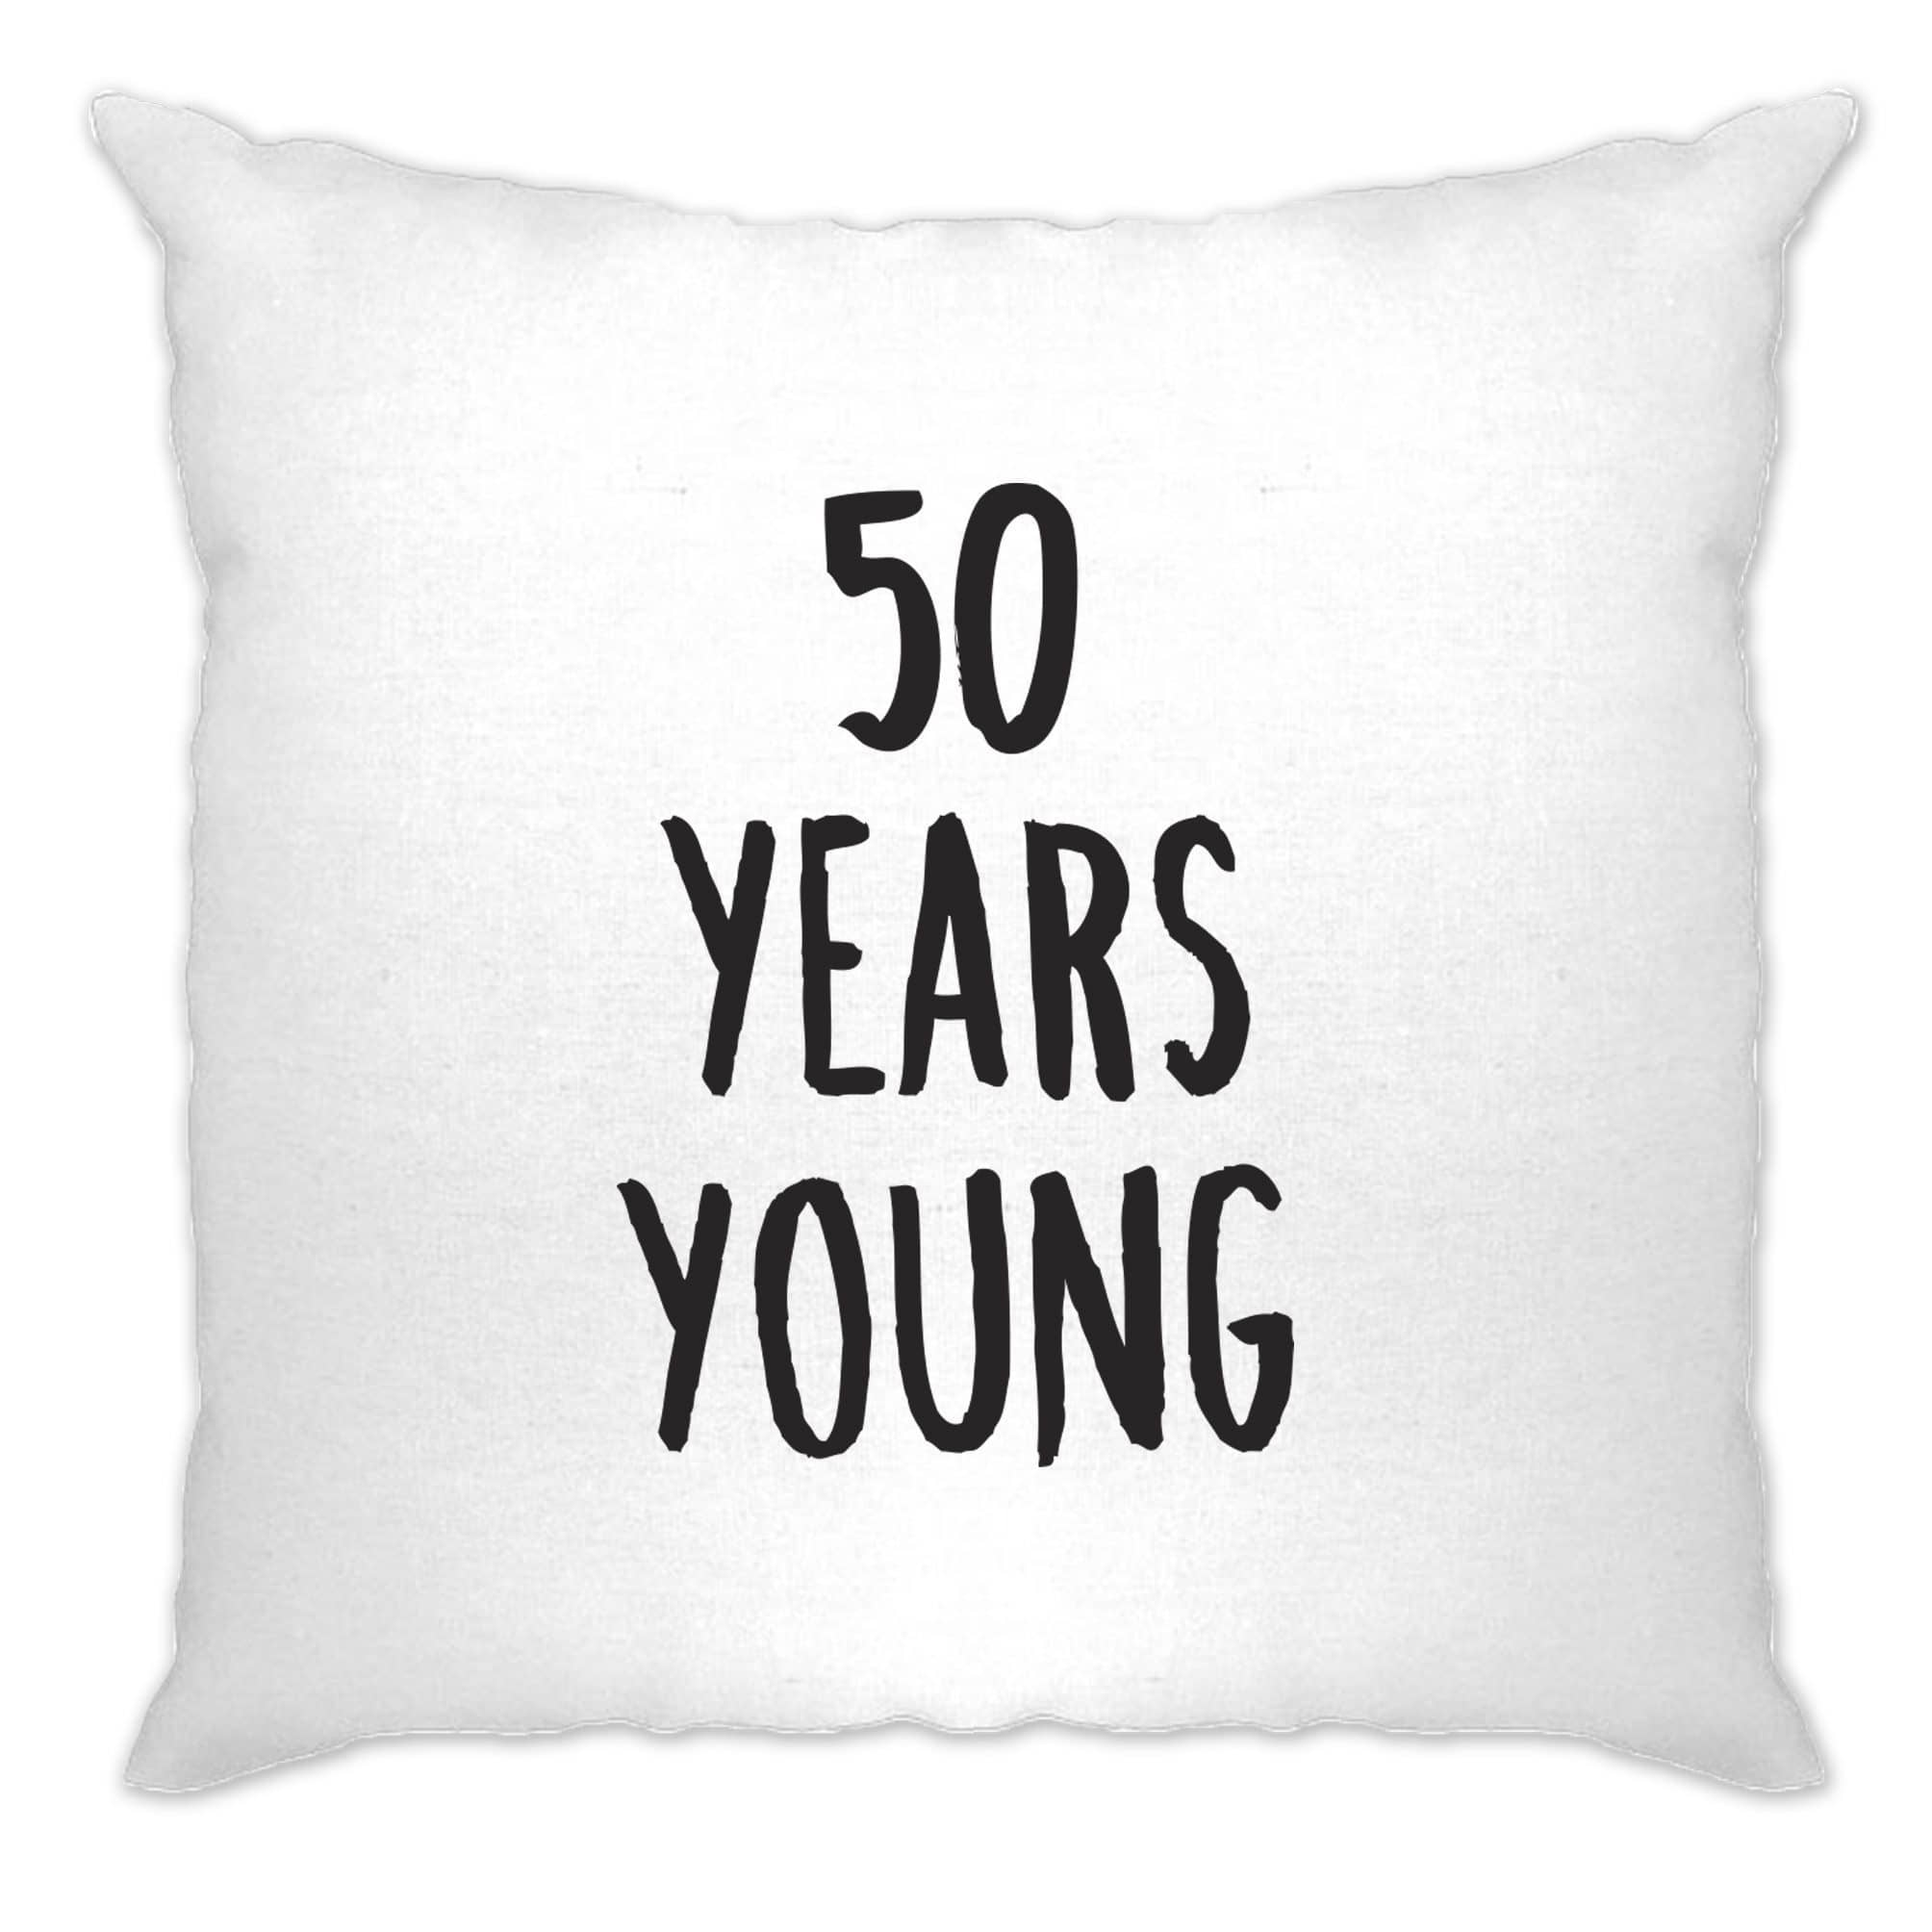 50th Birthday Joke Cushion Cover 50 Years Young Novelty Text